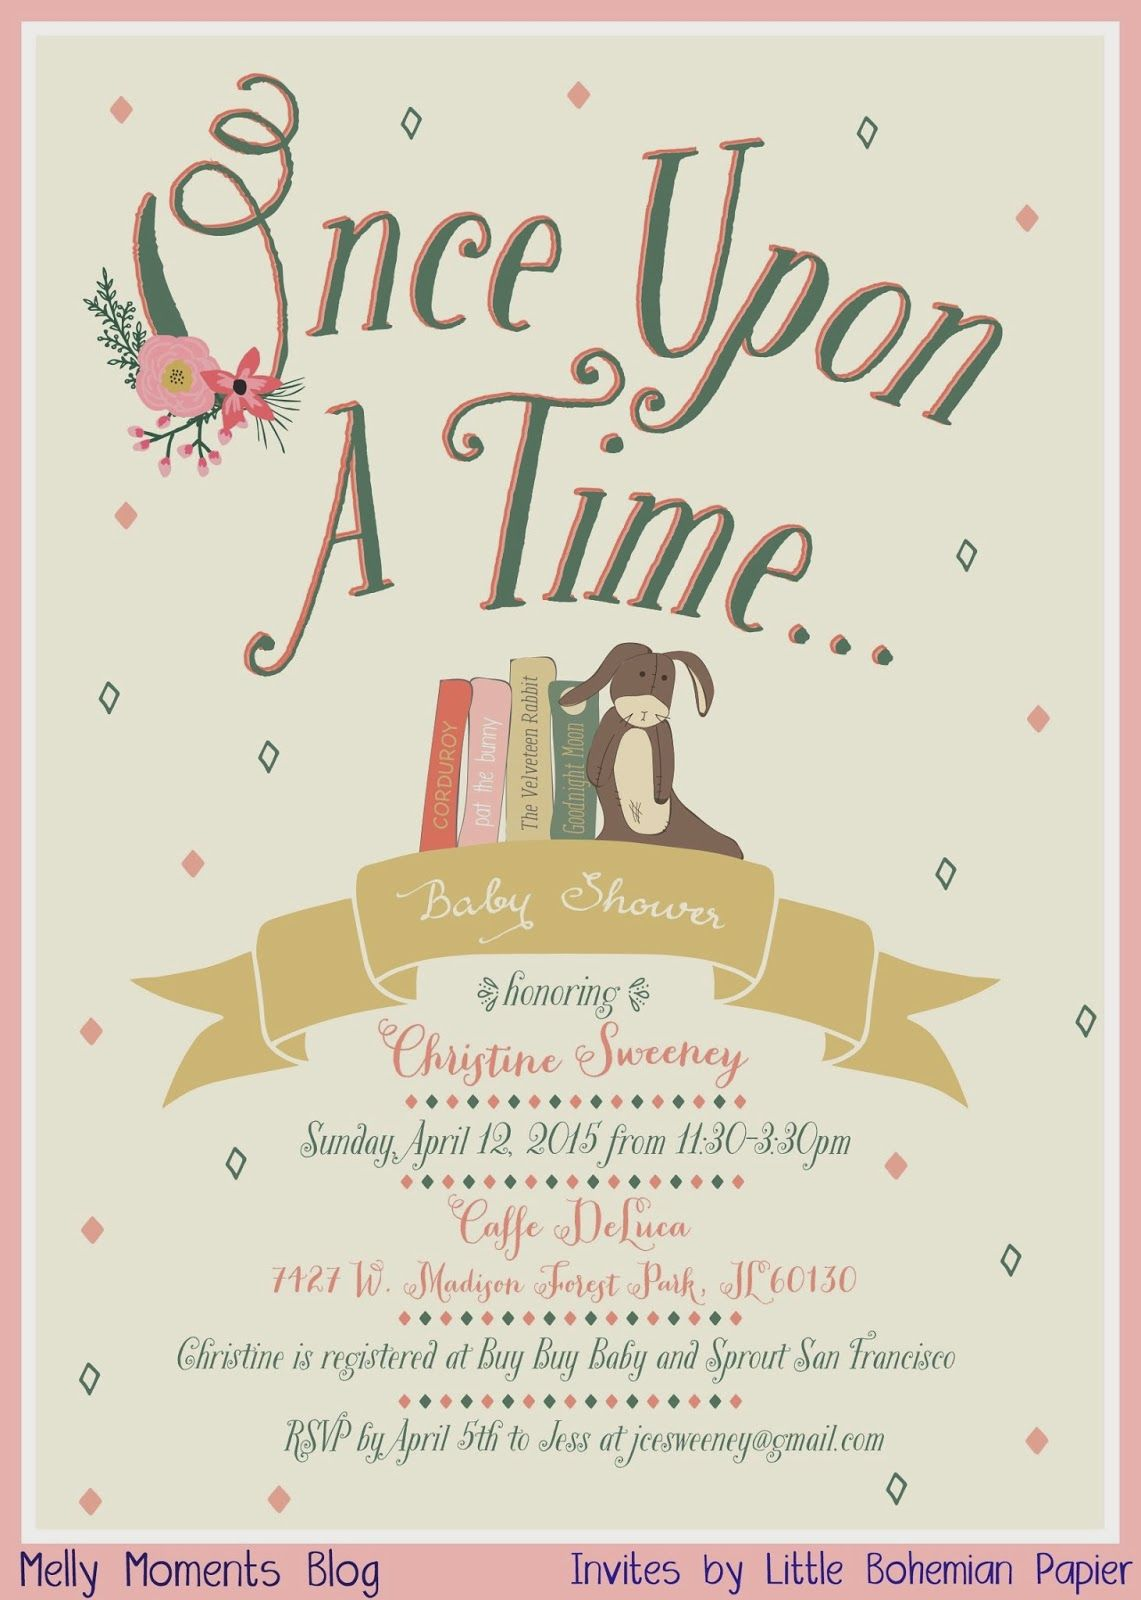 Melly Moments: Storybook Themed Baby Shower | Baby!!!! | Pinterest ...